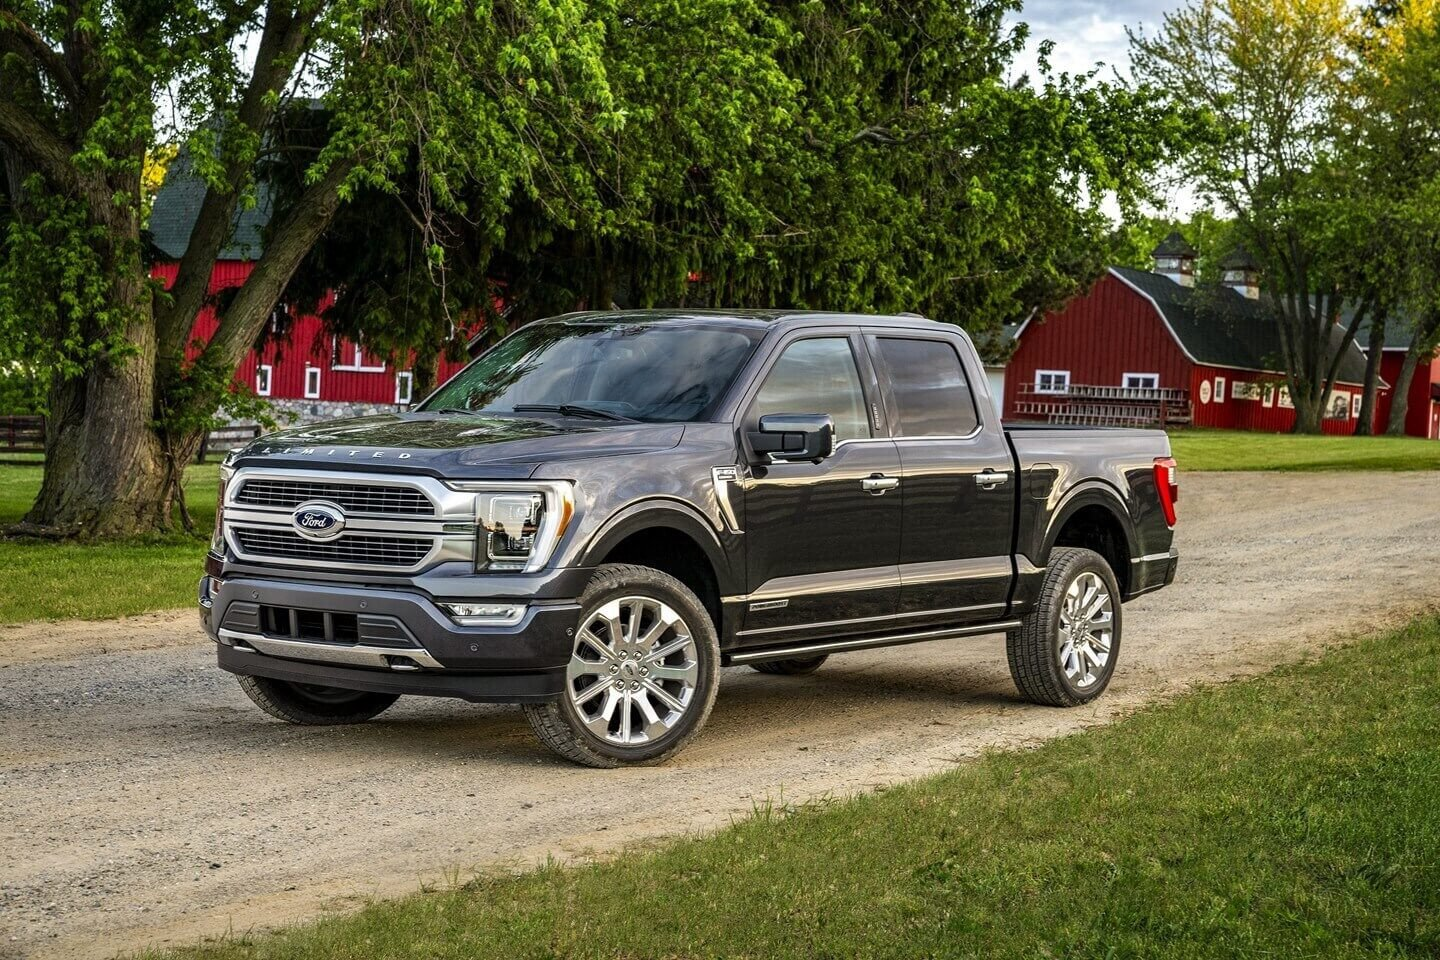 What is the Ford A plan? - Ford F-150 - Mullinax Ford of Mobile